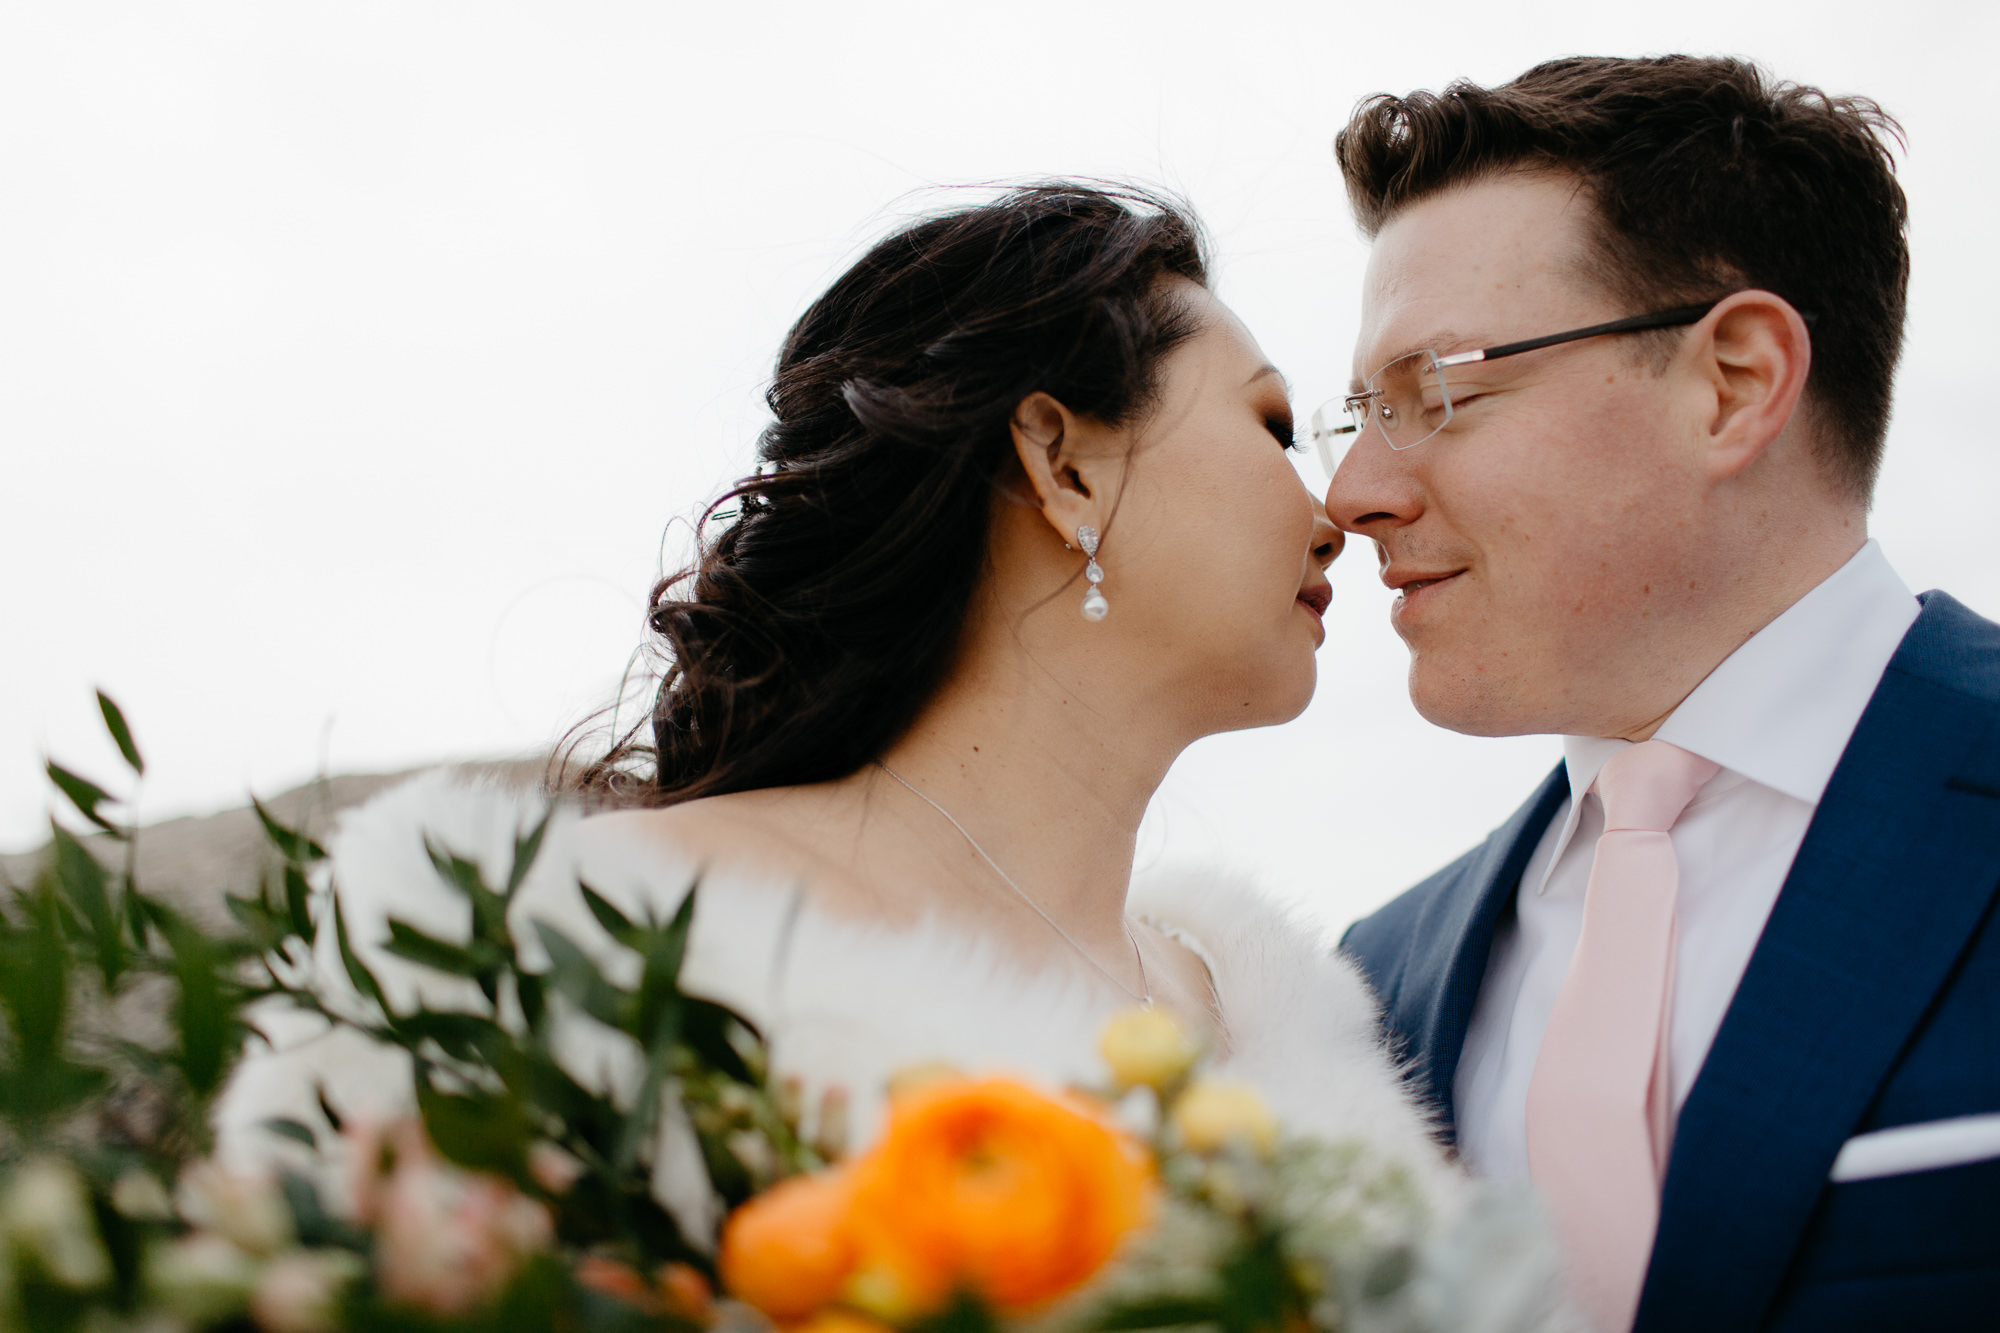 Peaks-of-Otter-Virginia-Of-Fate-and-Chaos-Elopement-Sharp-Top-23.jpg